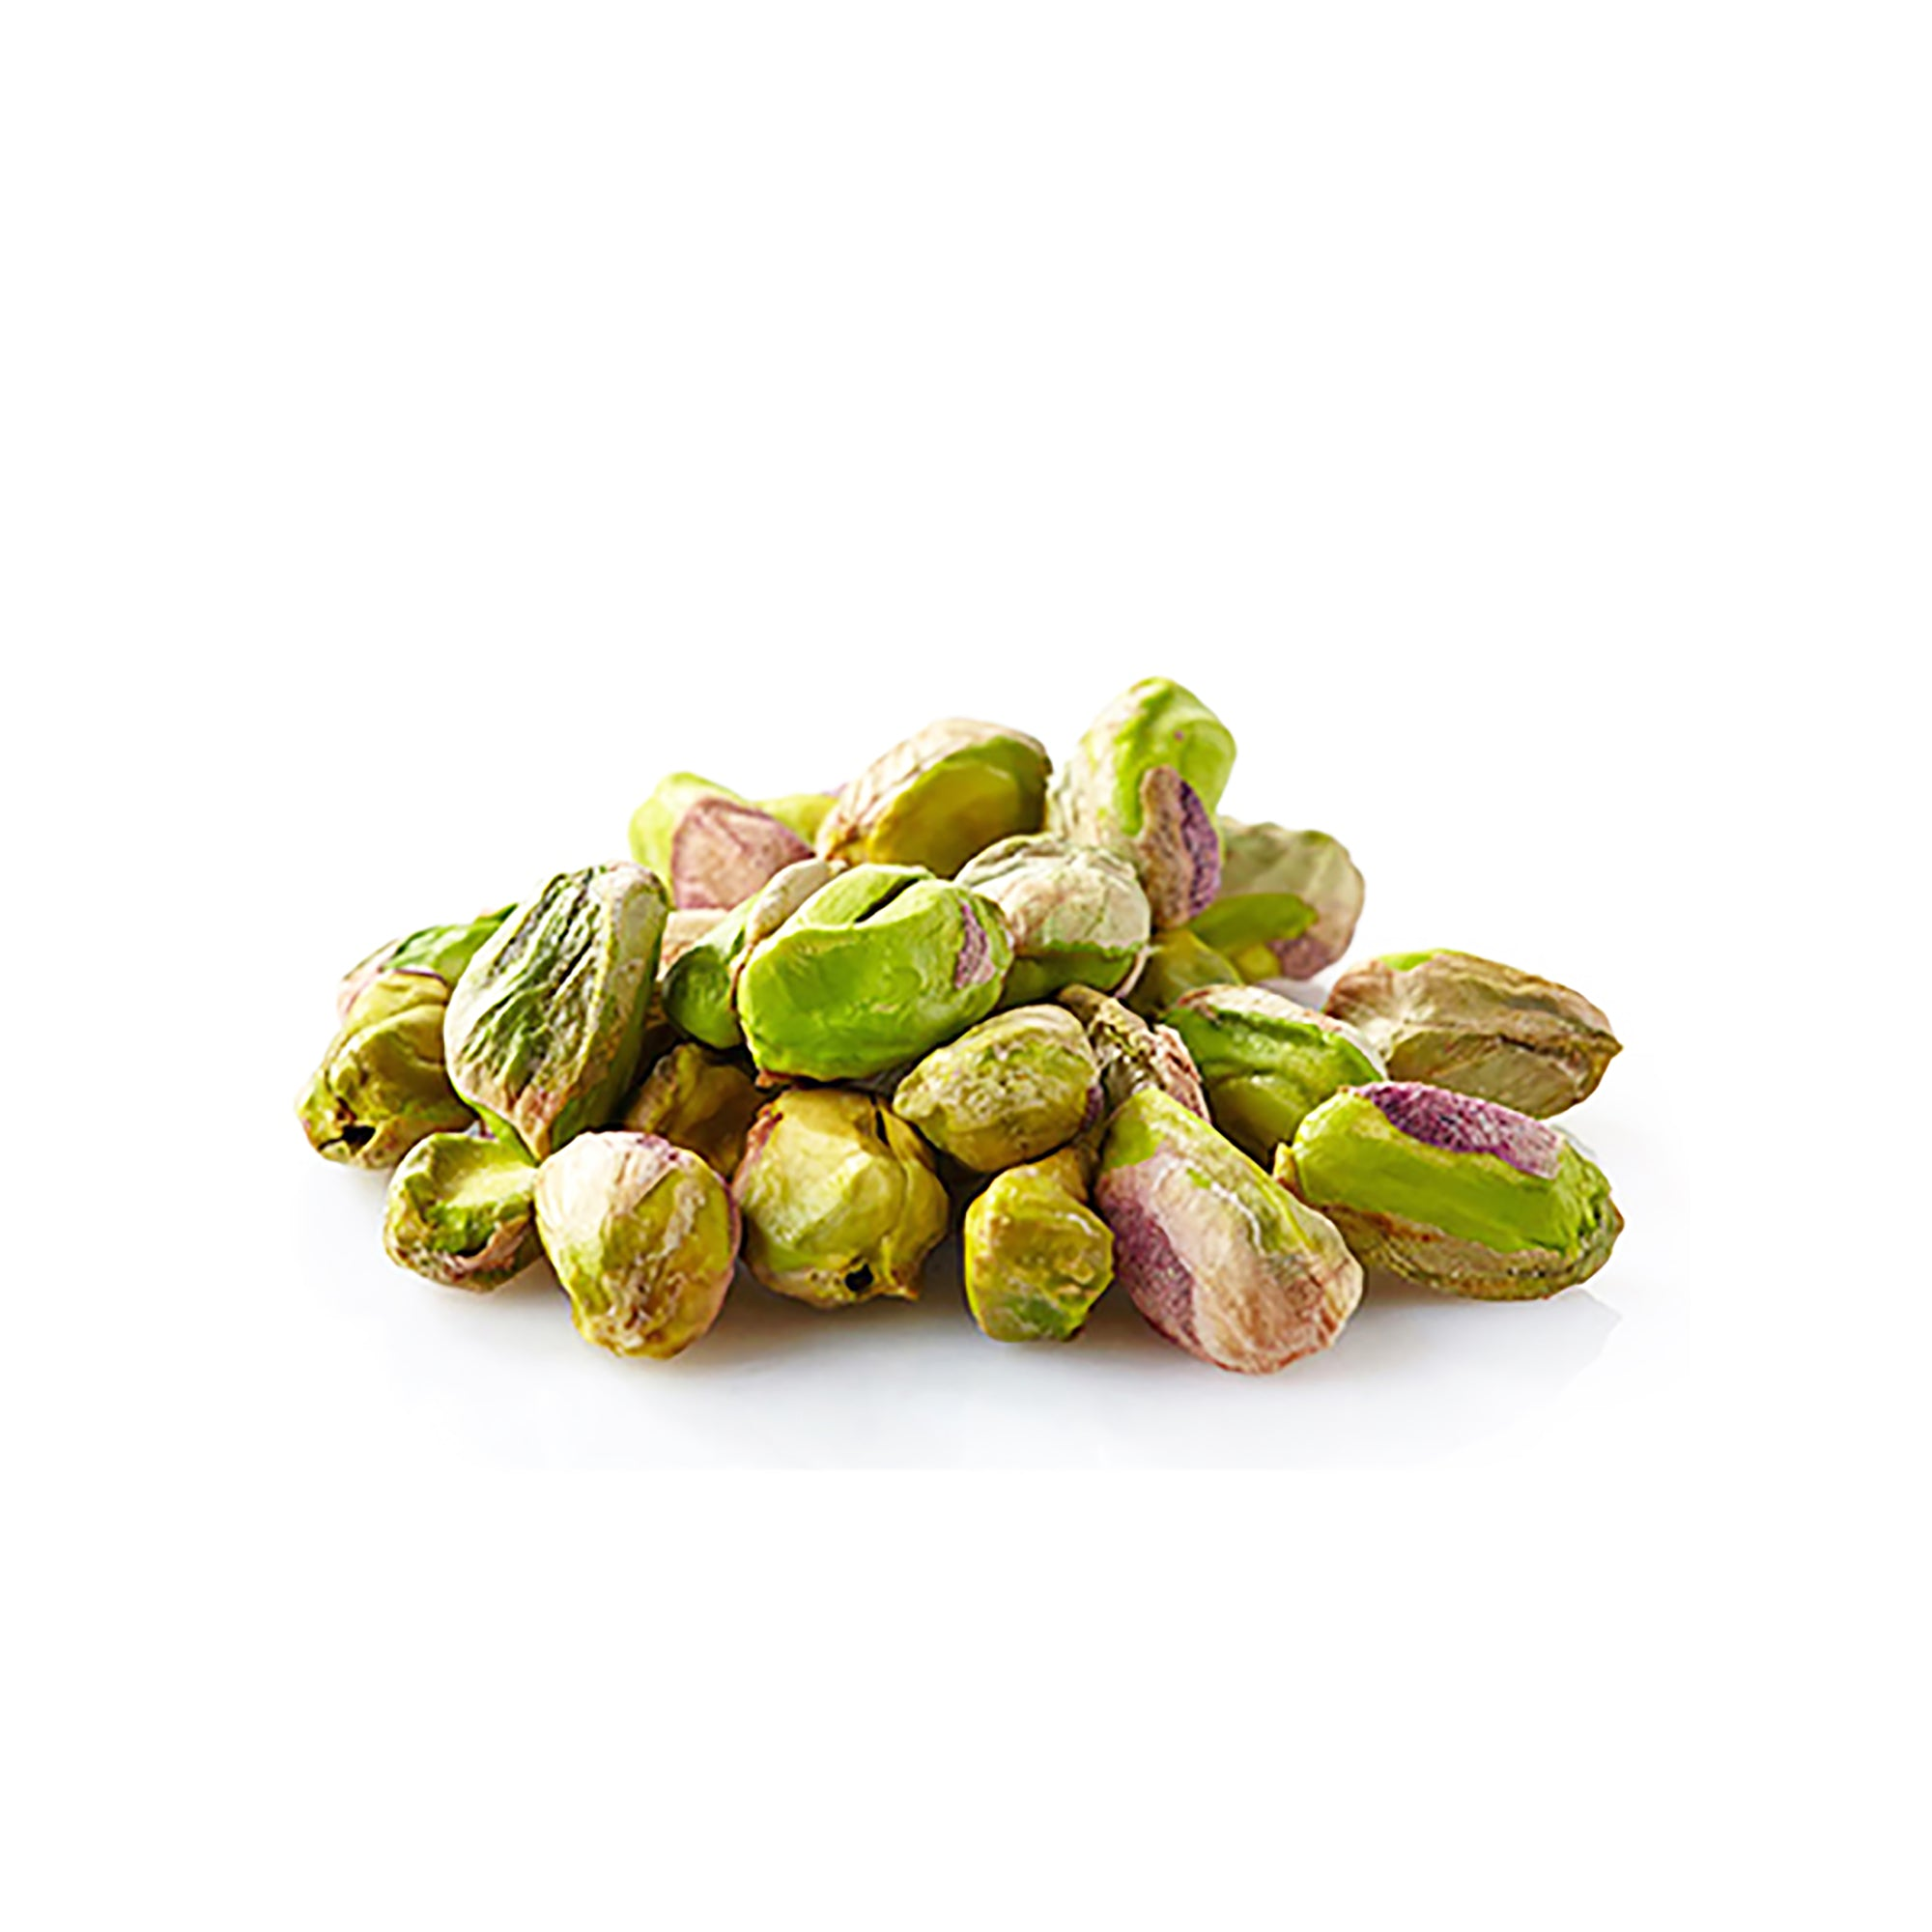 Roasted & Salted Shelled Pistachios 6 oz - 848S